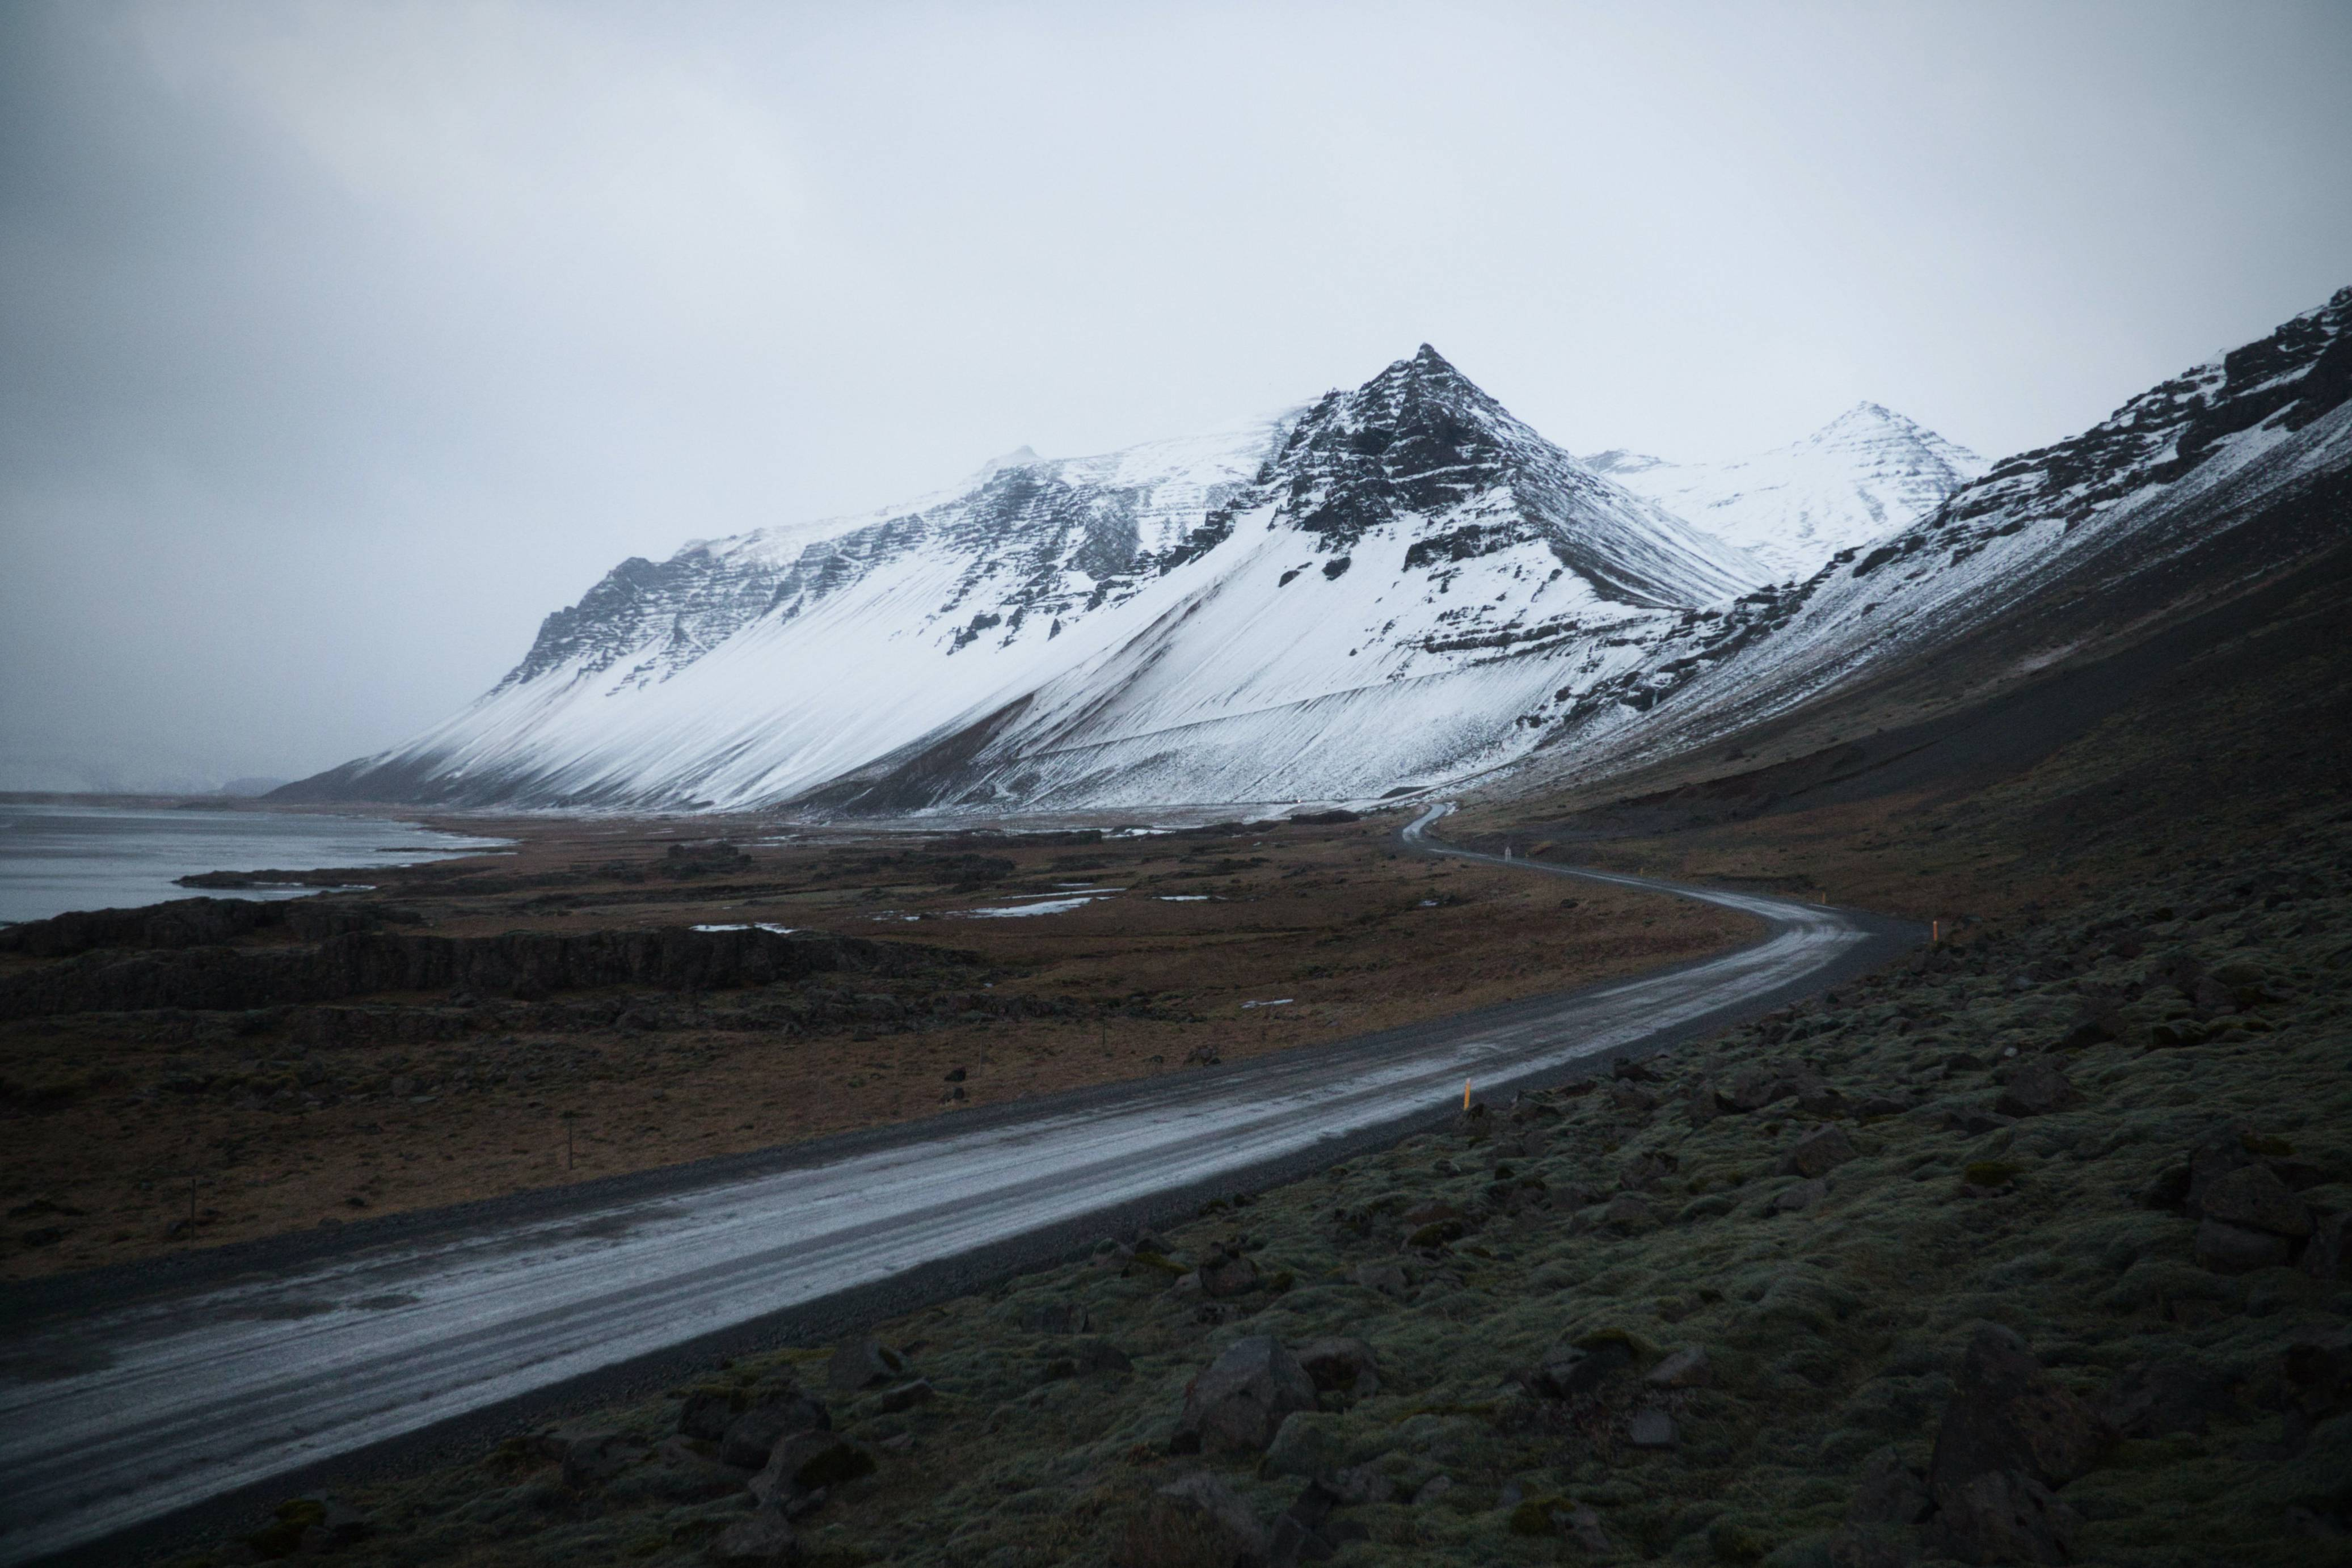 Icelandic-road-in-winter-along-the-coast-and-mountains-covered-in-snow-in-background